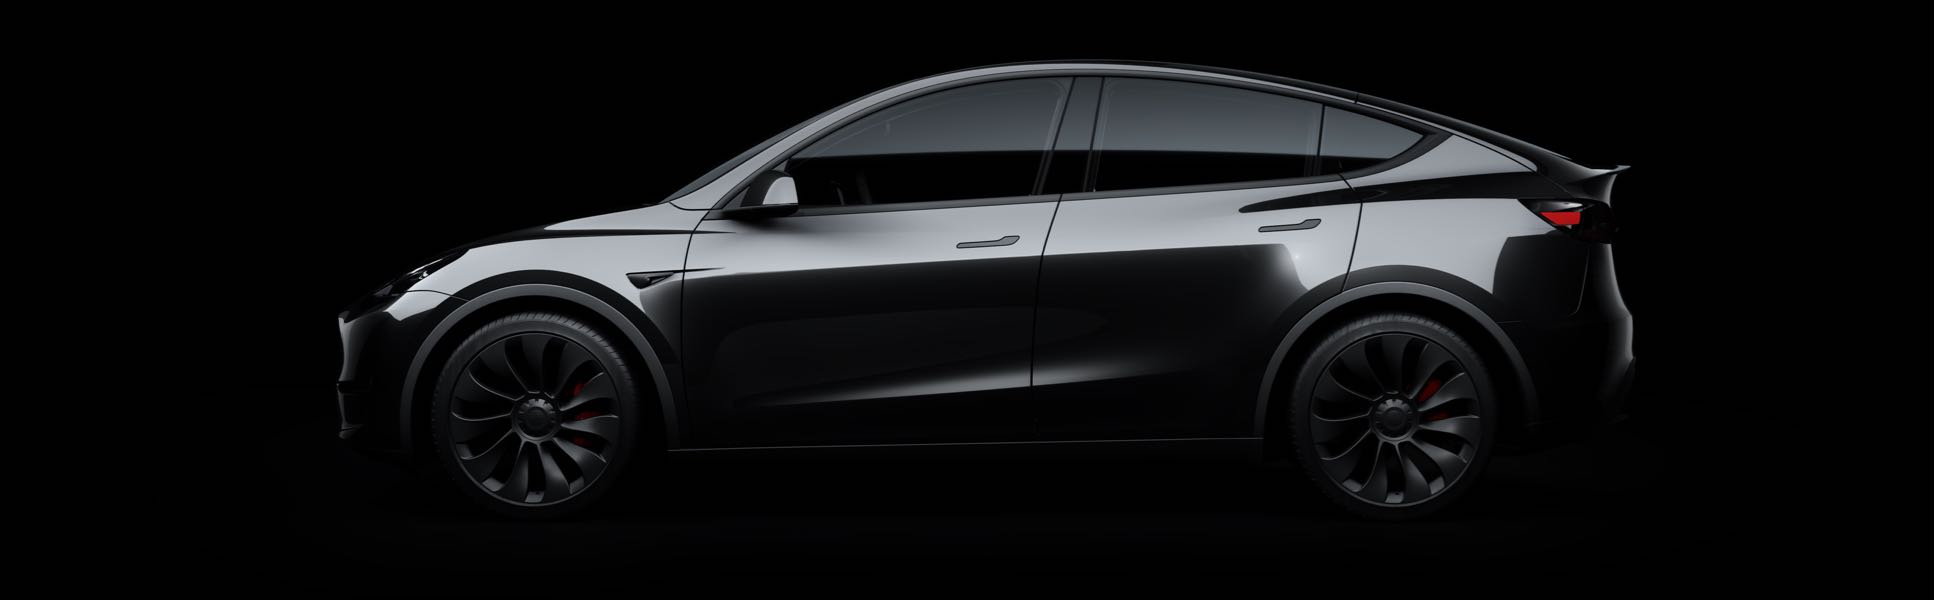 How Much Is a Used Tesla Model Y? – MotorBiscuit